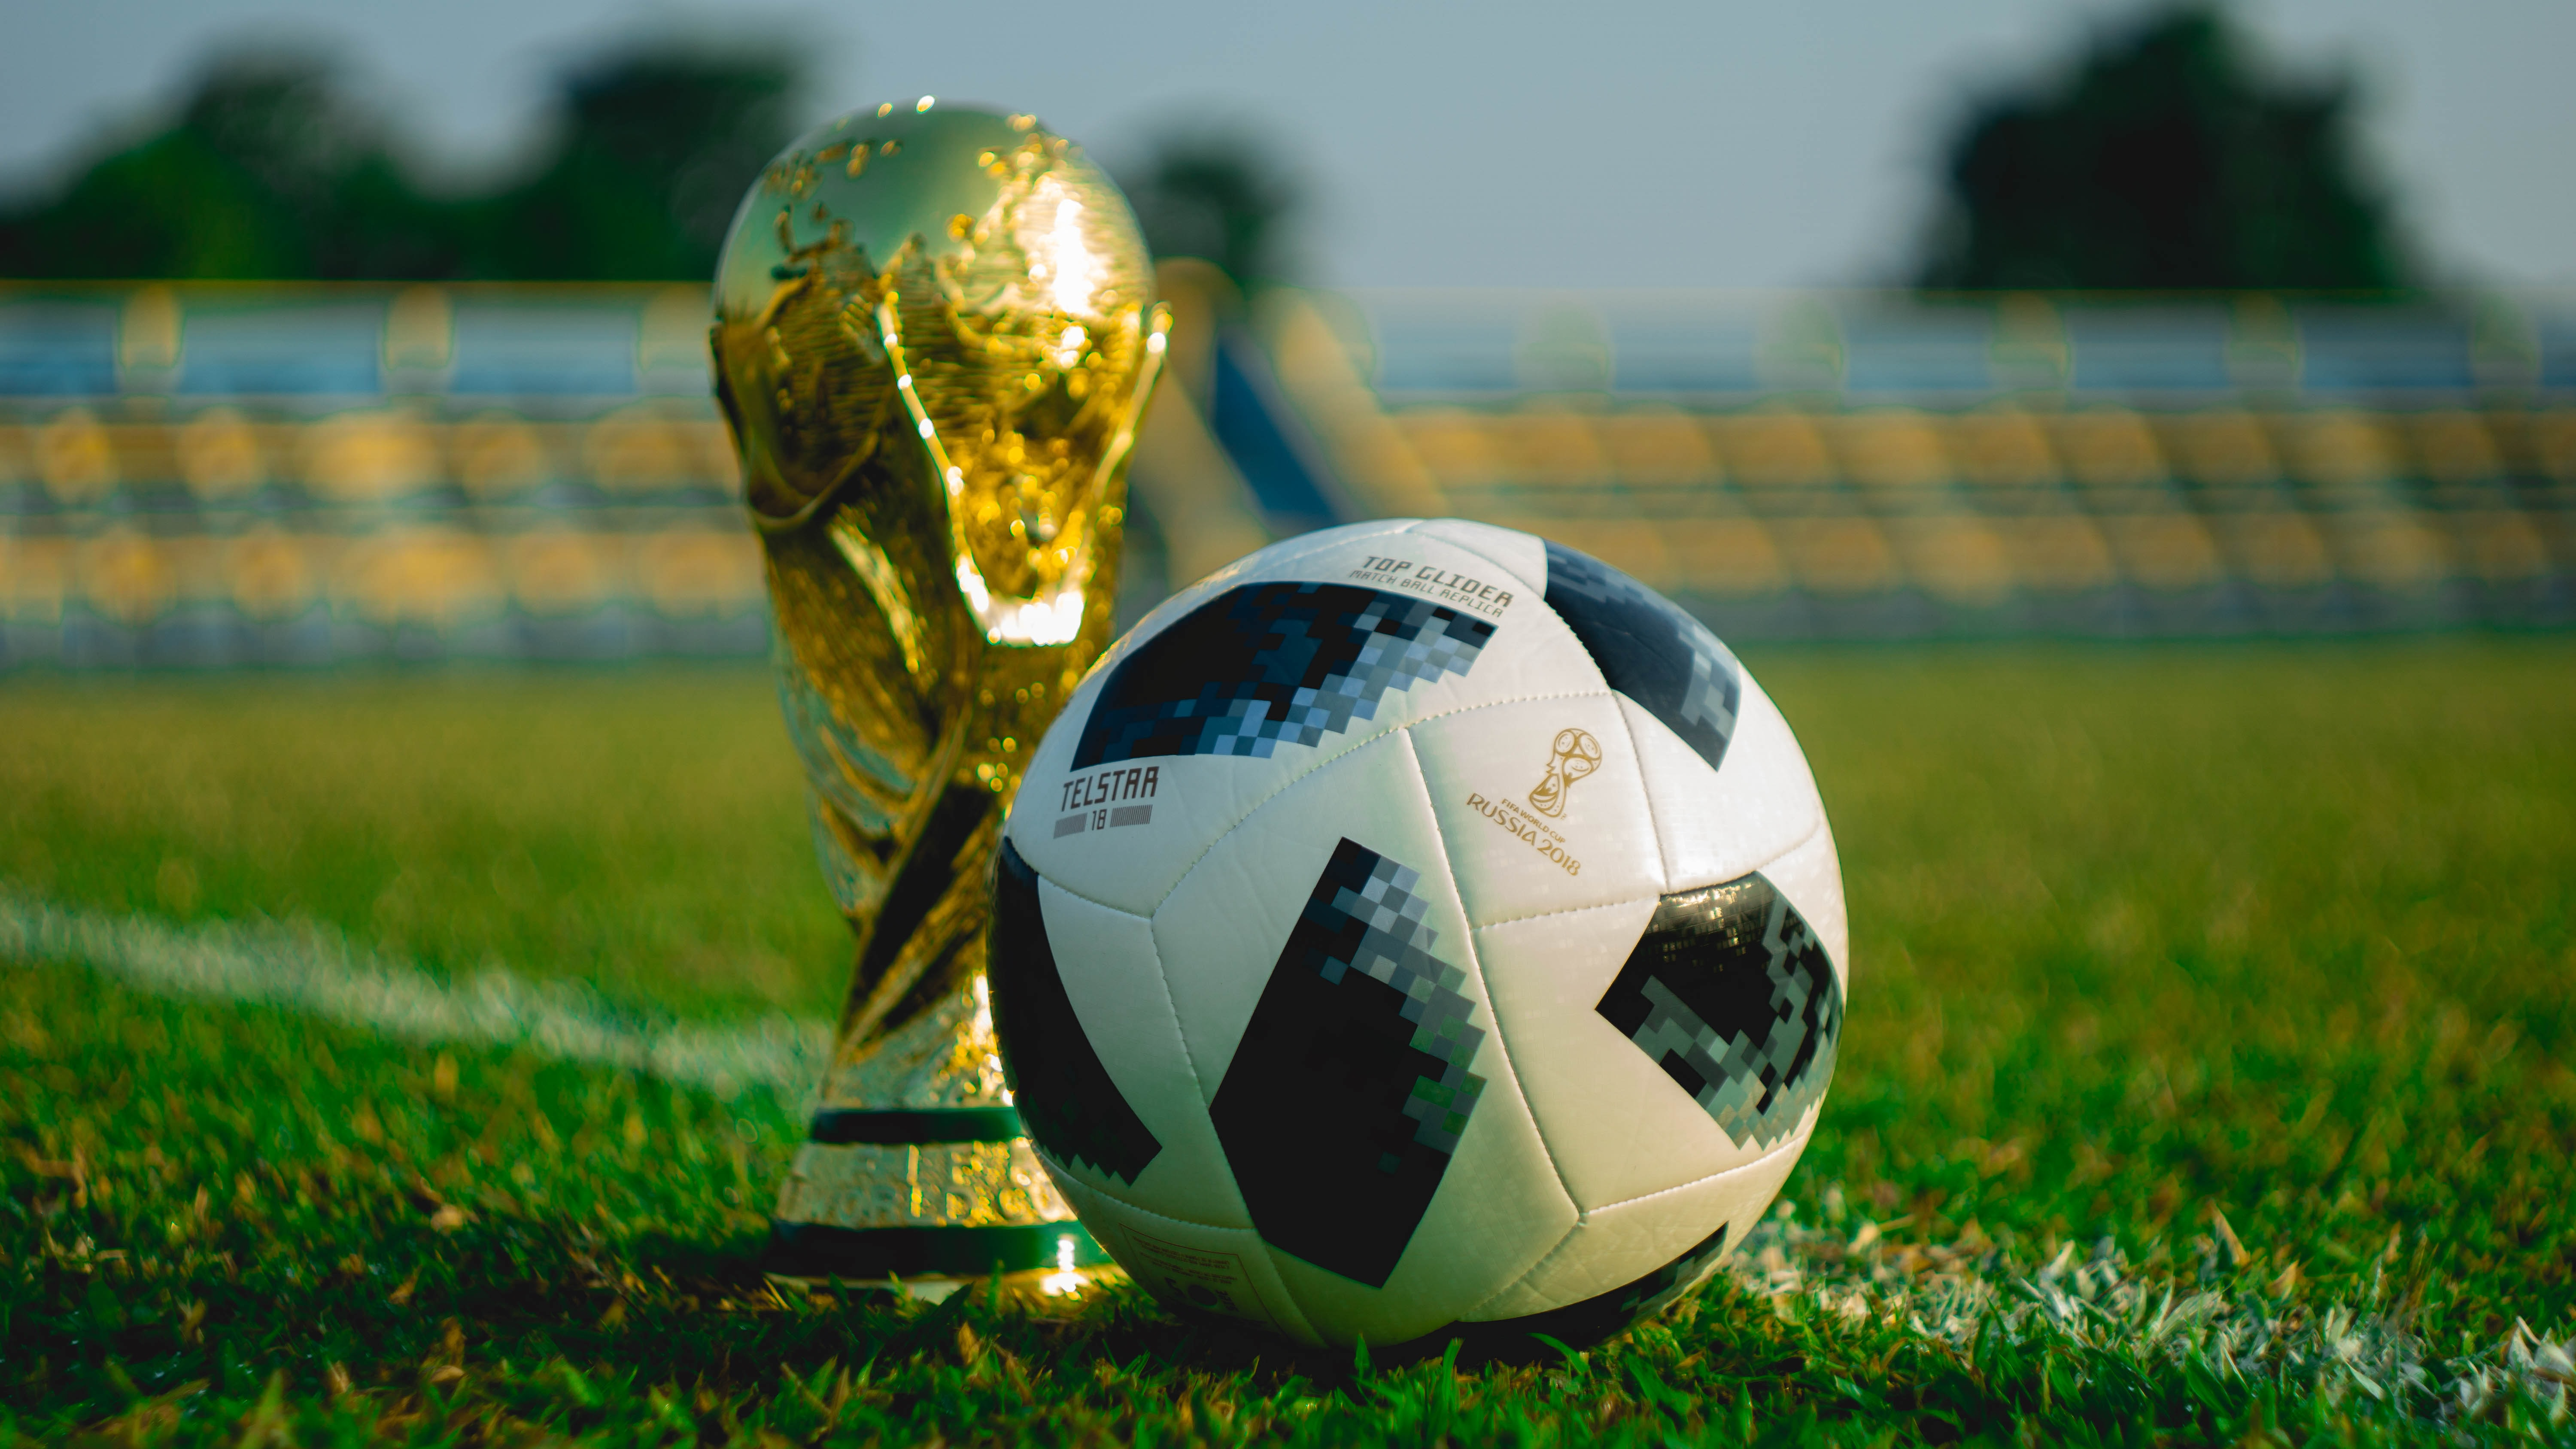 soccer ball beside trophy on soccer field